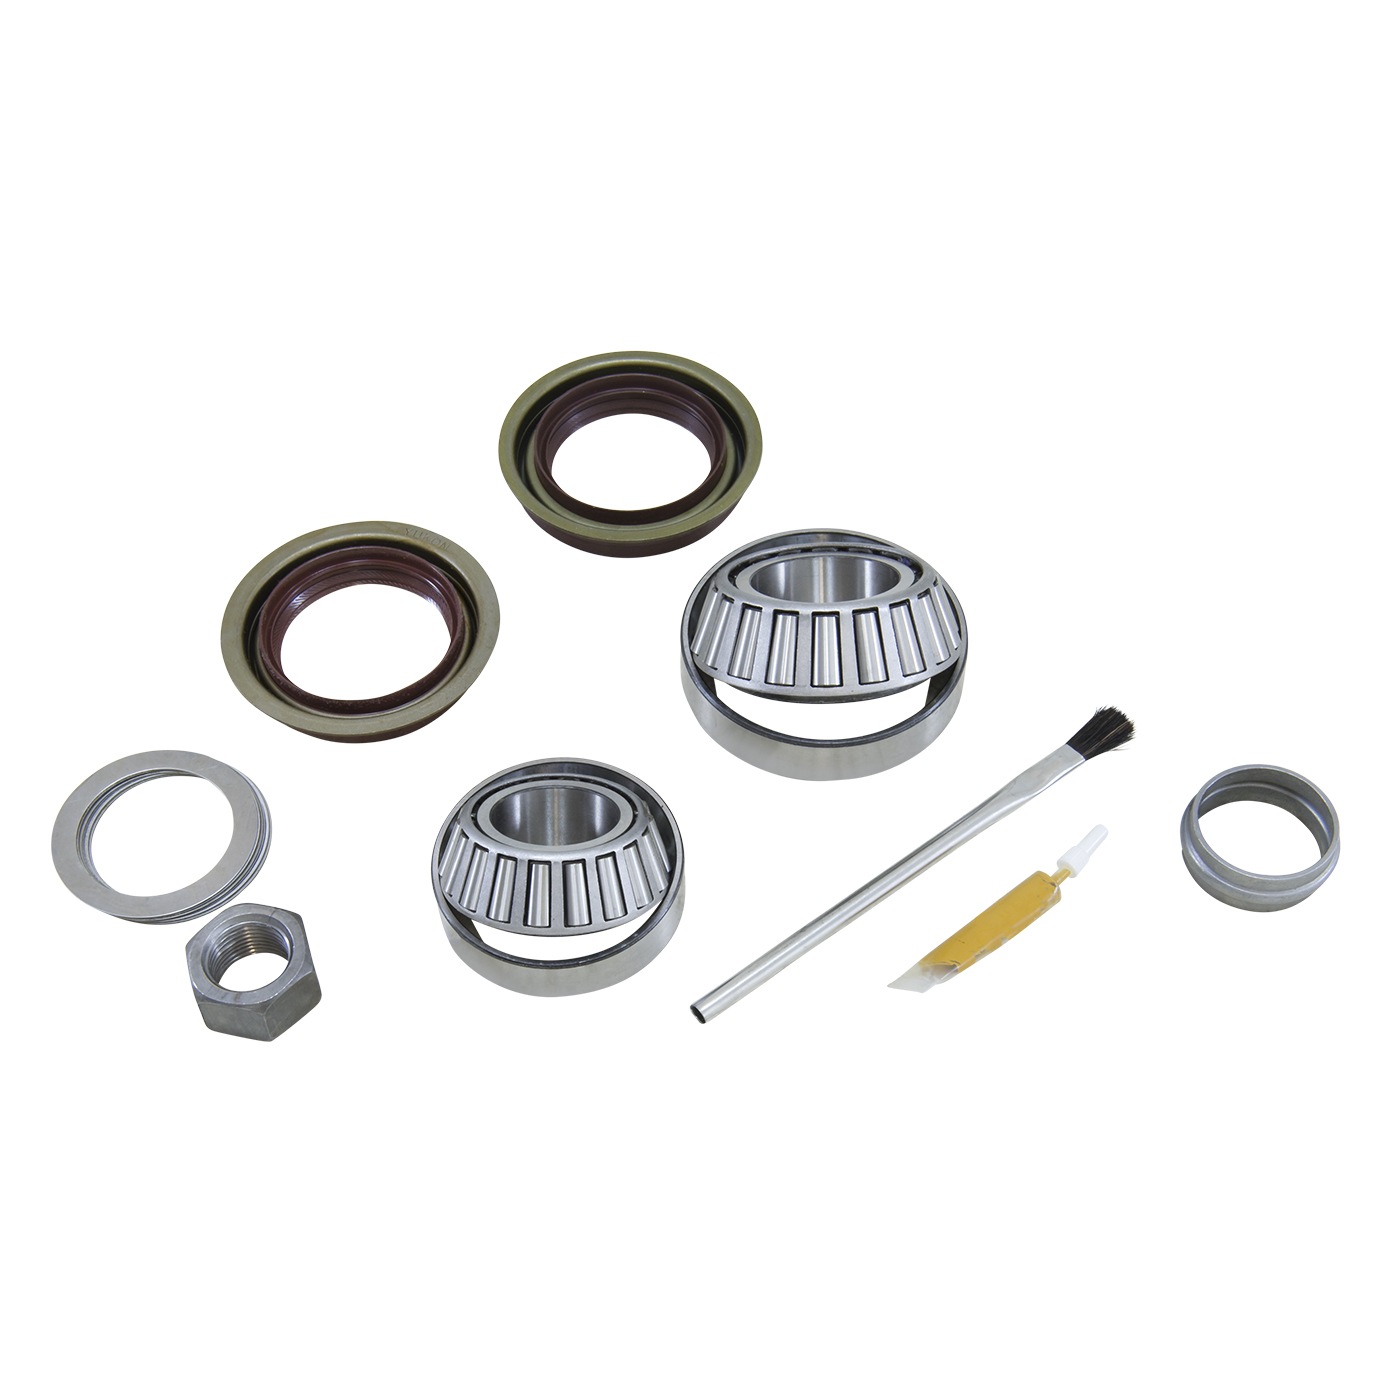 PK GM8.6-A - Yukon Pinion install kit for '08 & down GM 8.6